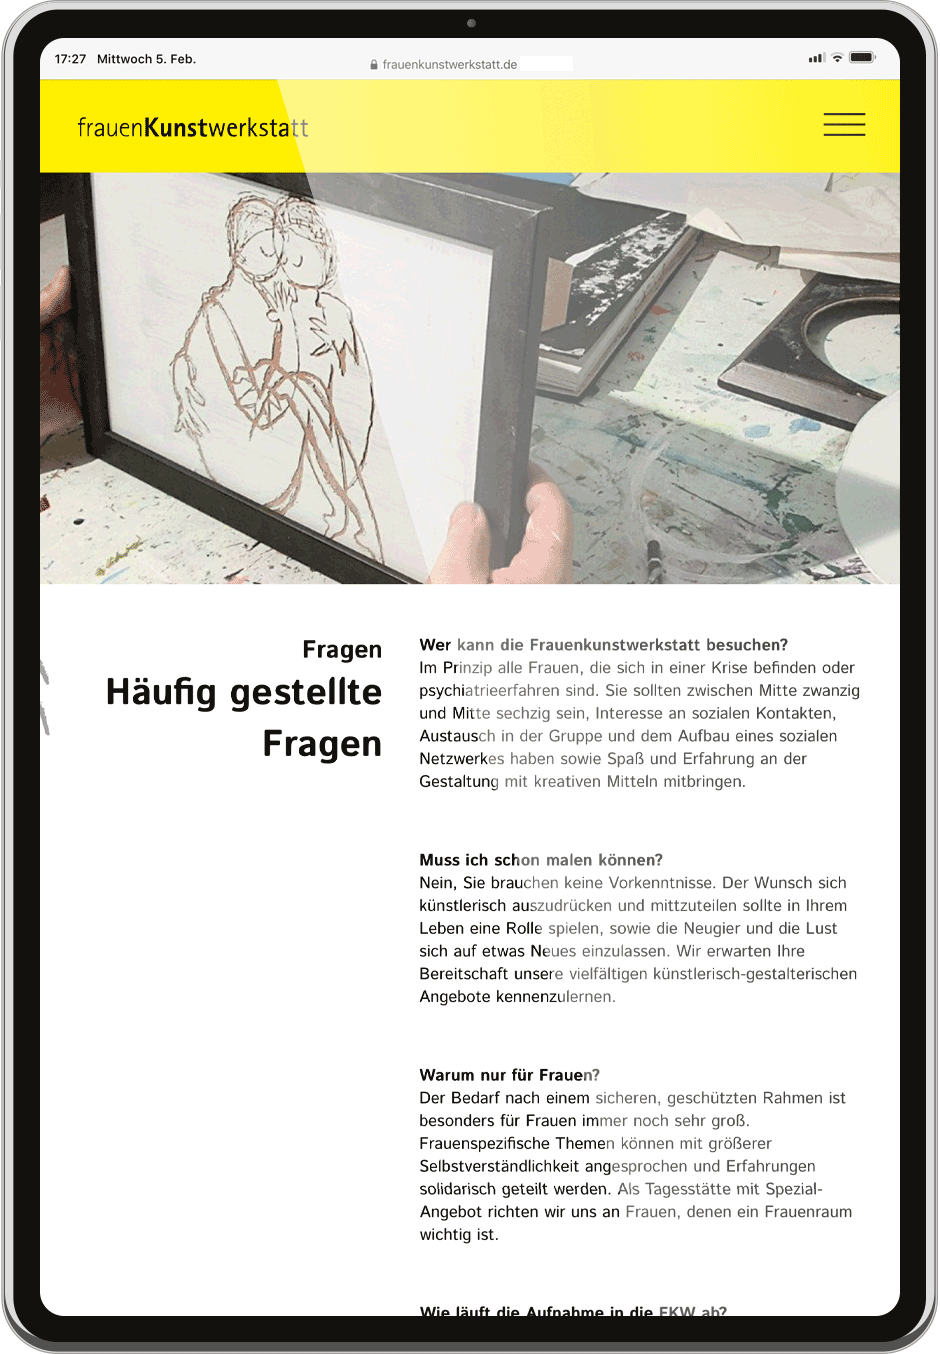 Frauenkunstwerkstatt Website Tablet Fragen